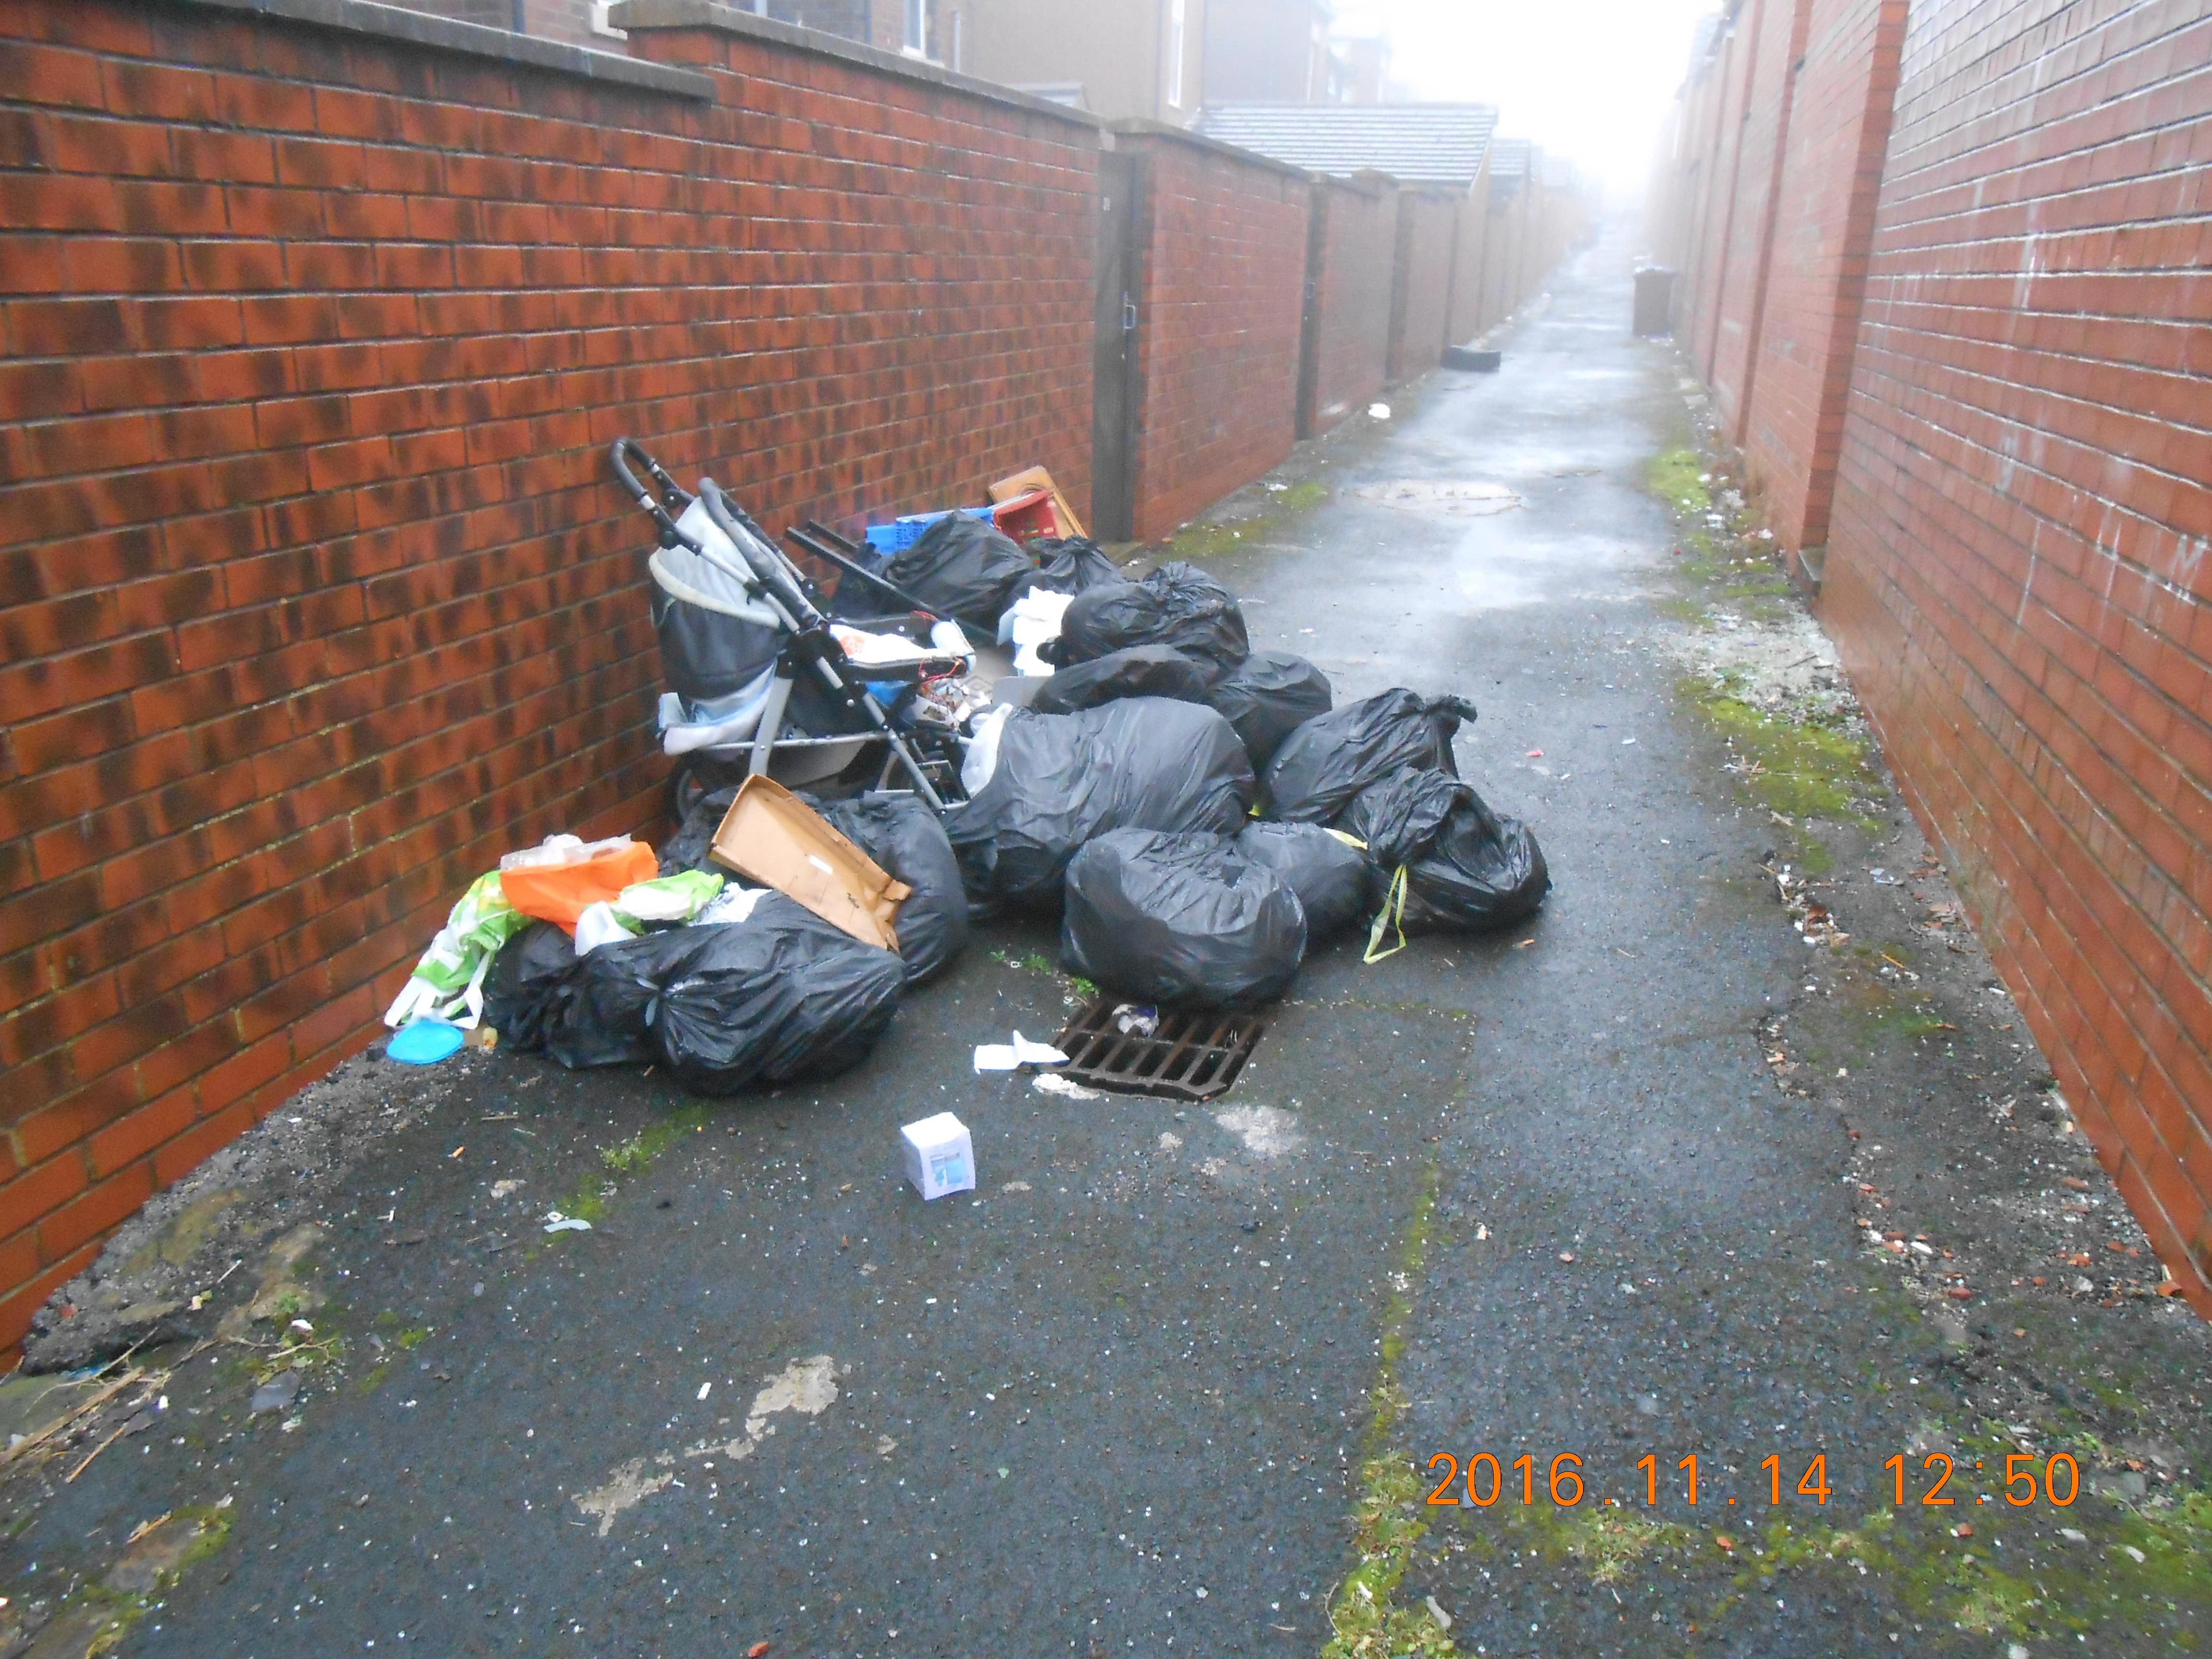 Oldham Council has fined another resident for fly-tipping after she dumped her waste in an alleyway.